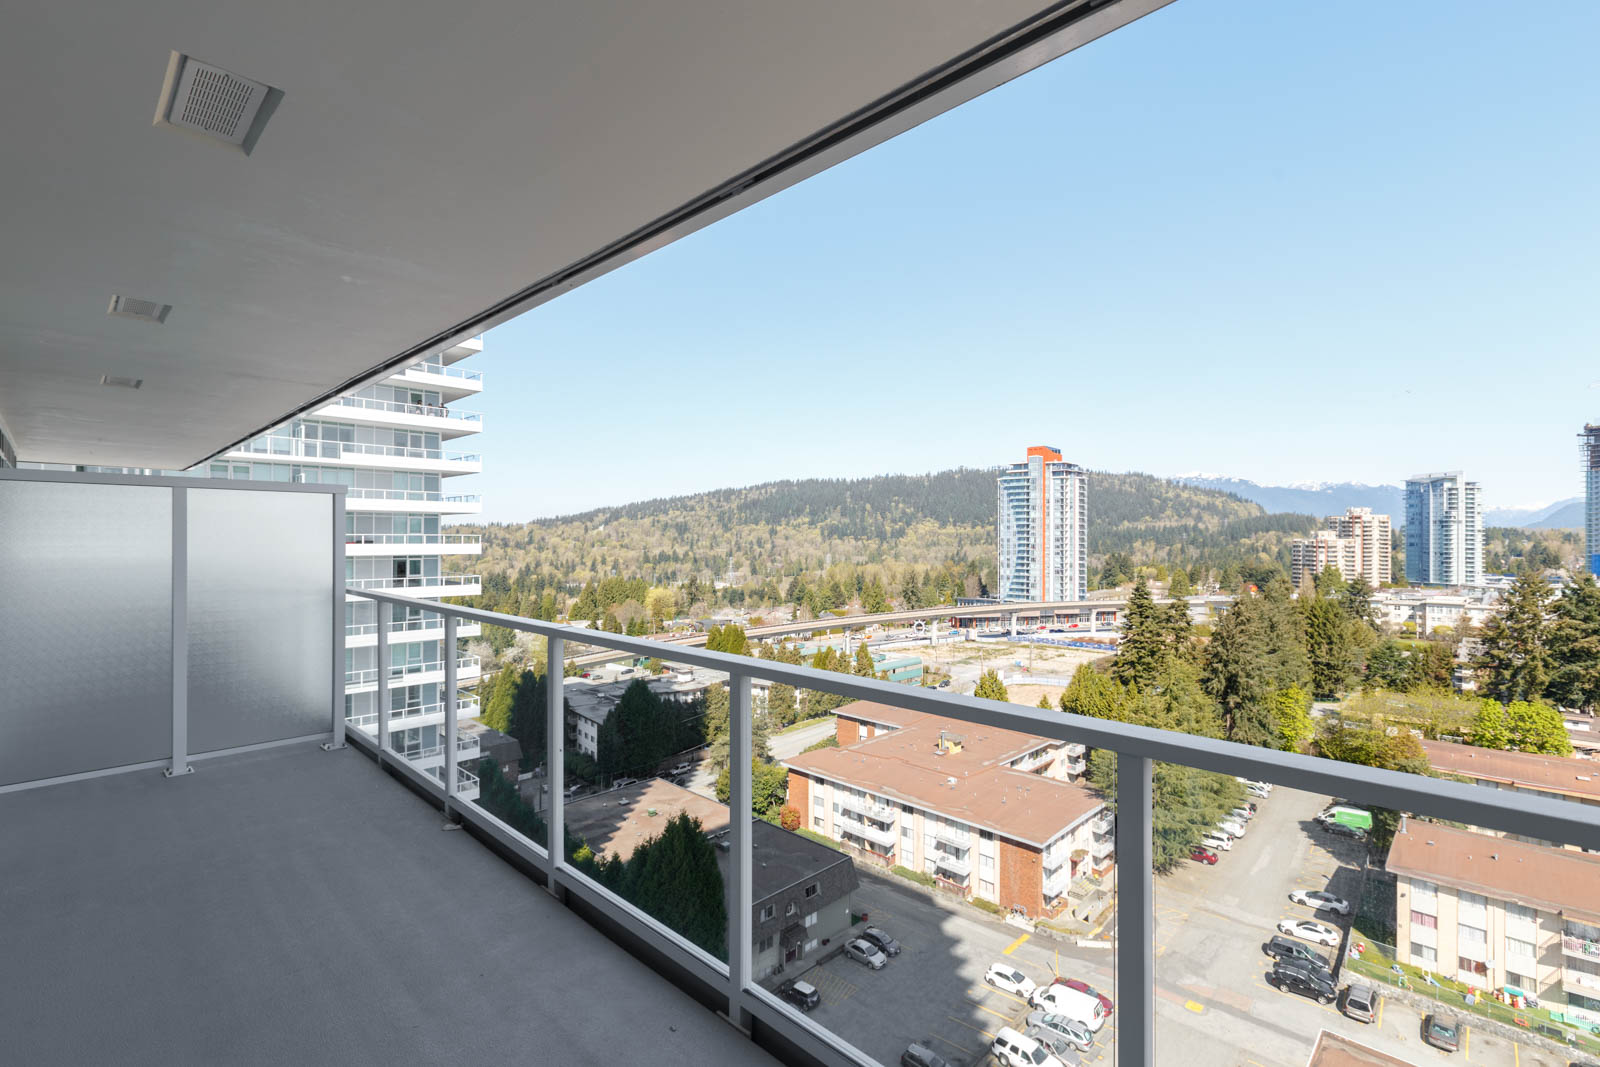 View overlooking the Coquitlam neighbourhood from the balcony in the condo located on Whiting Way and Foster Avenue in a new condo in Coquitlam managed by Birds Nest Properties in Vancouver